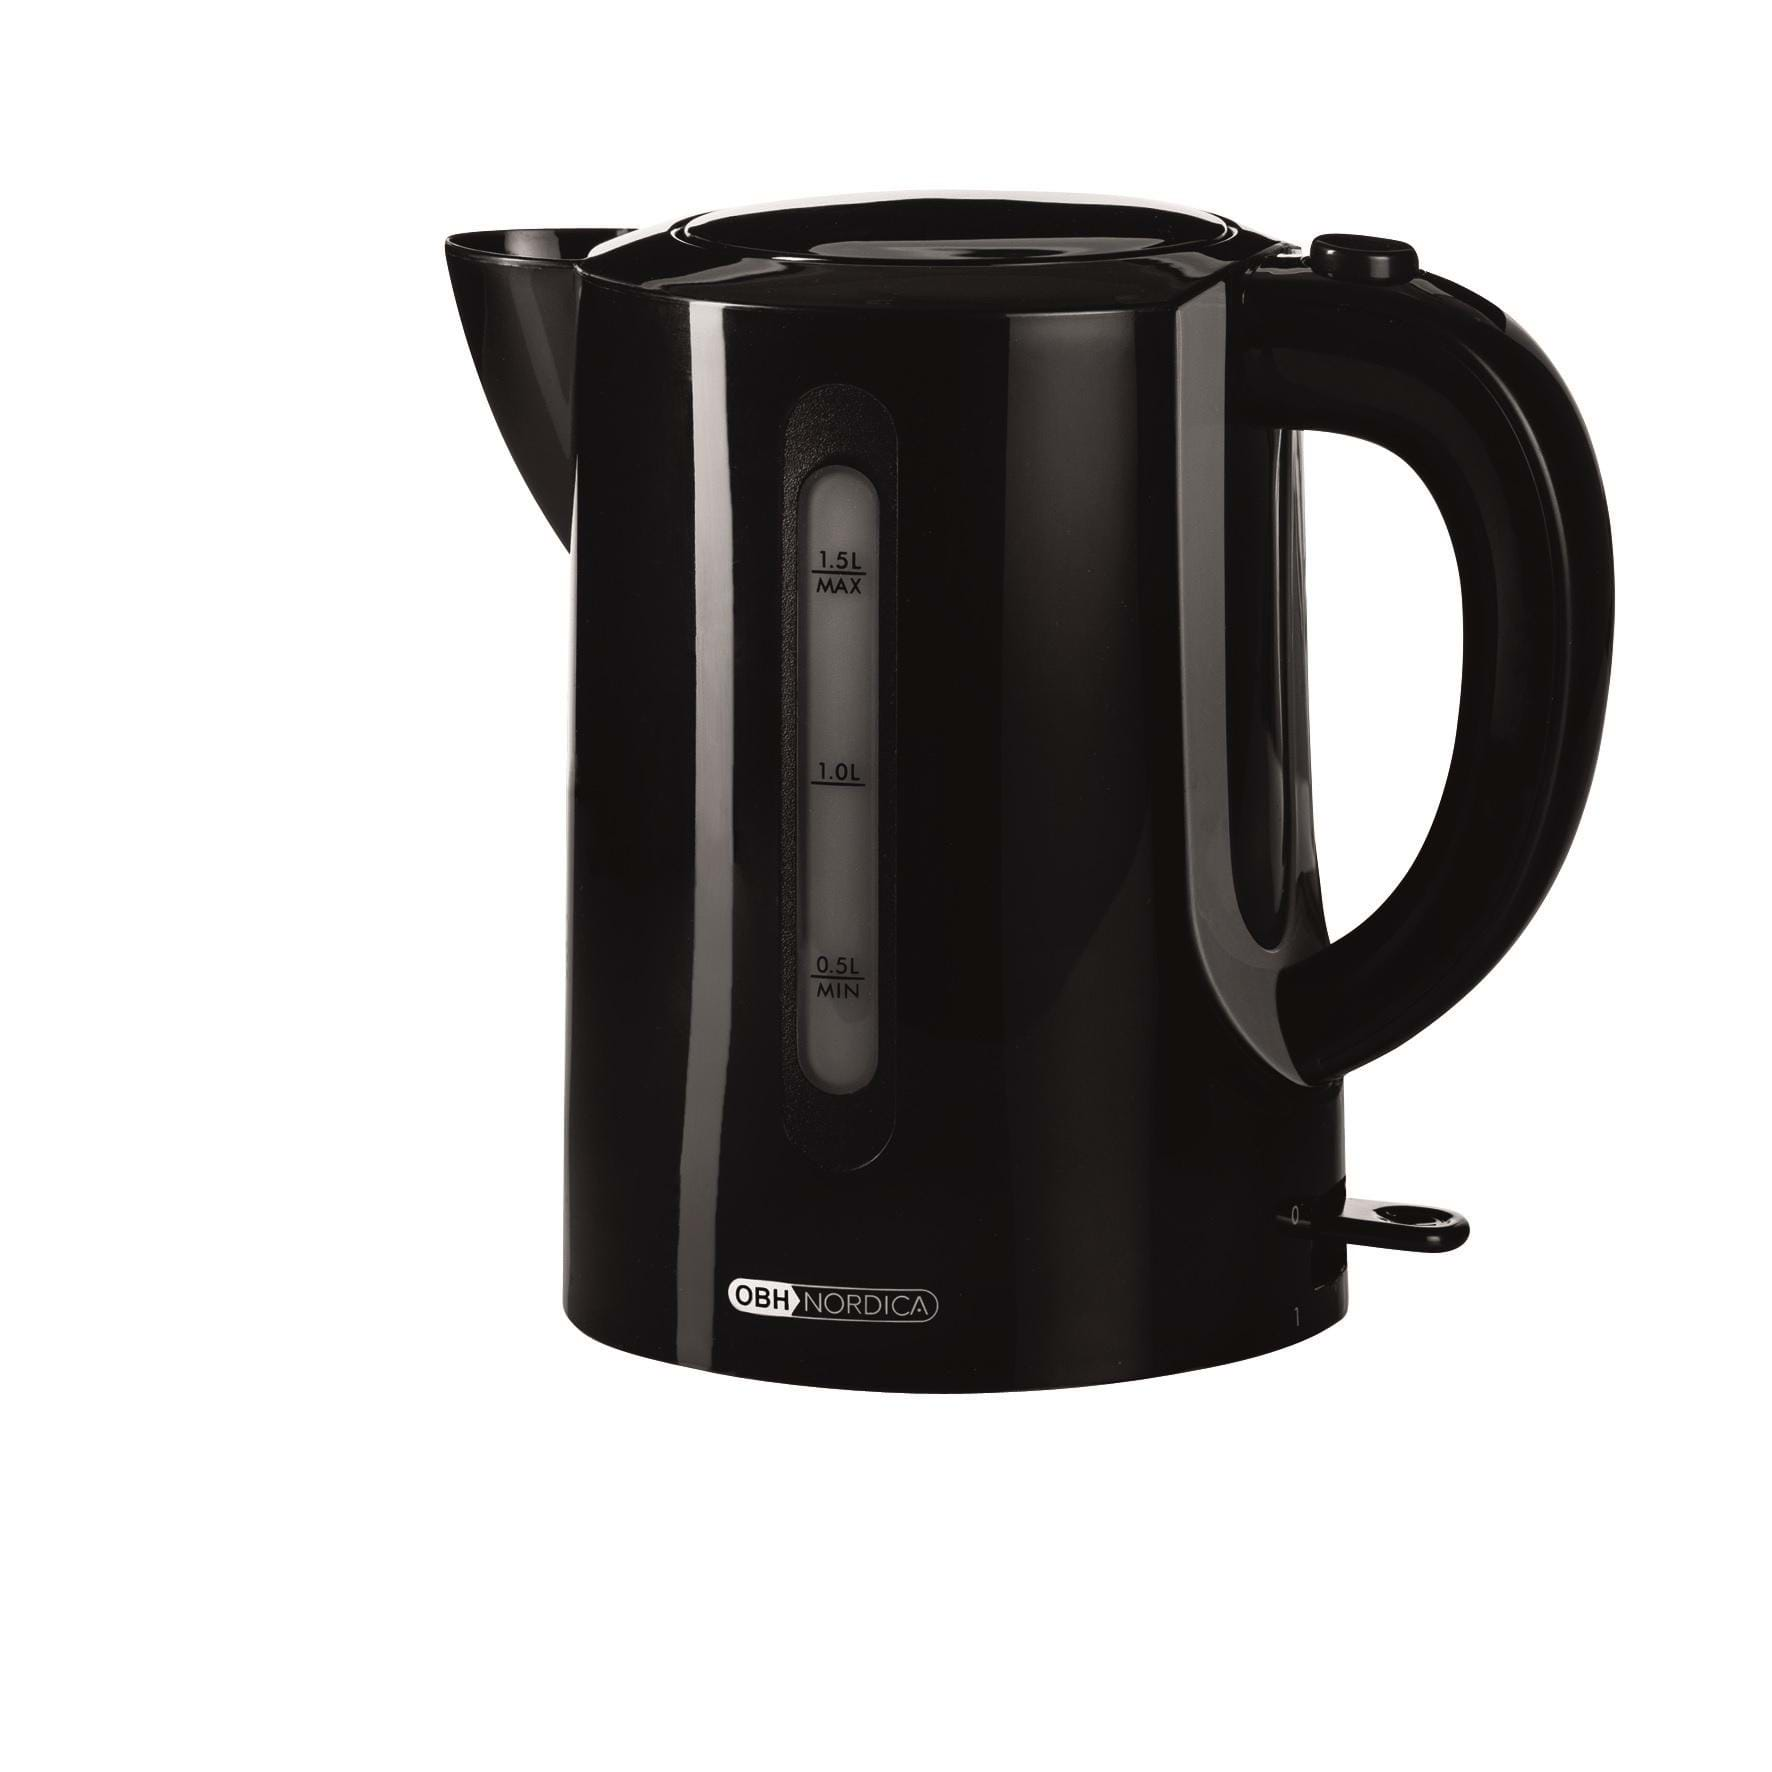 OBH Nordica Elkedel Kettle Spirit Black - 6411 - Sort - 2000 W